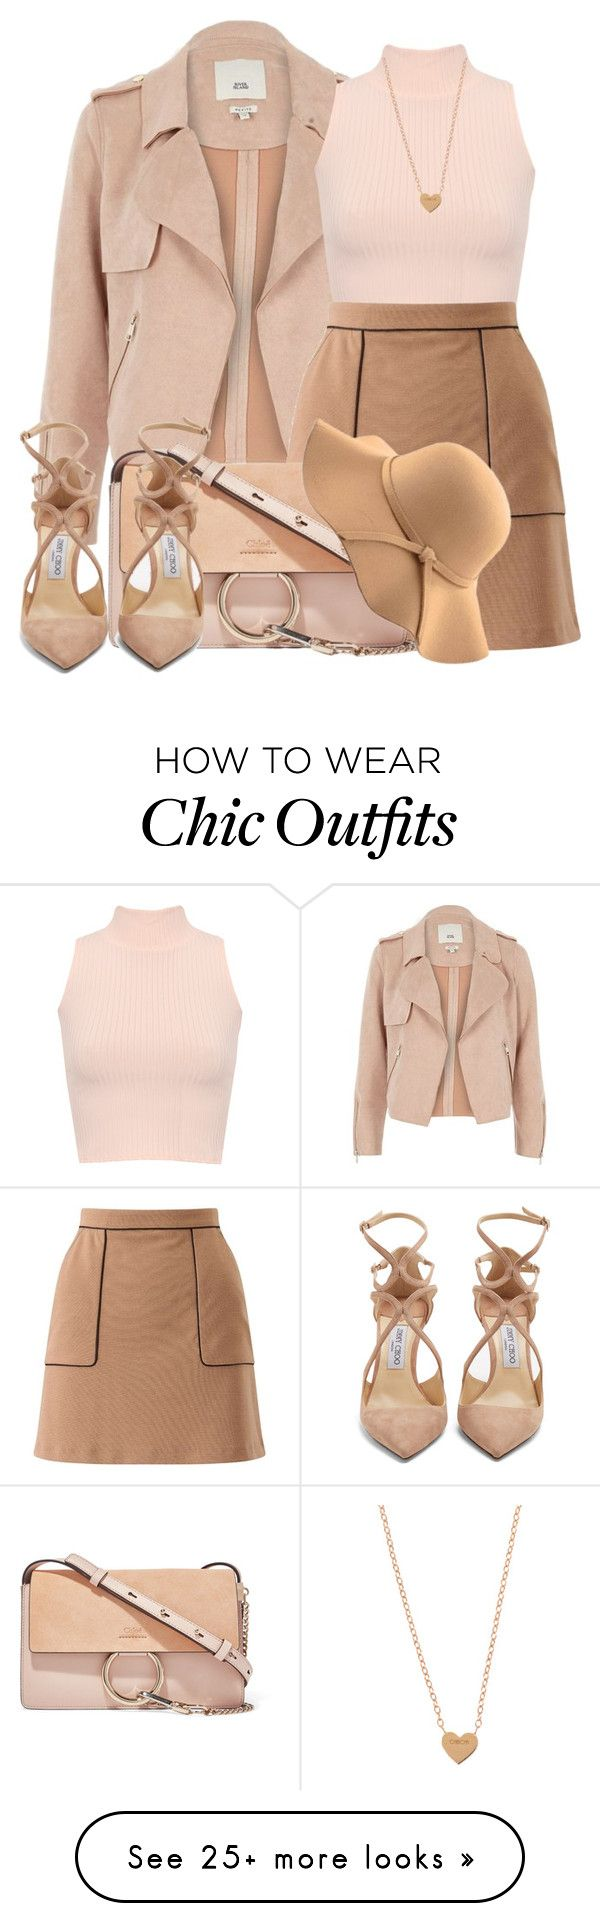 """""""Just chic and girly"""" by benerojay on Polyvore featuring River Island, WearAll, Miss Selfridge, Chloé, Jimmy Choo and WithChic"""